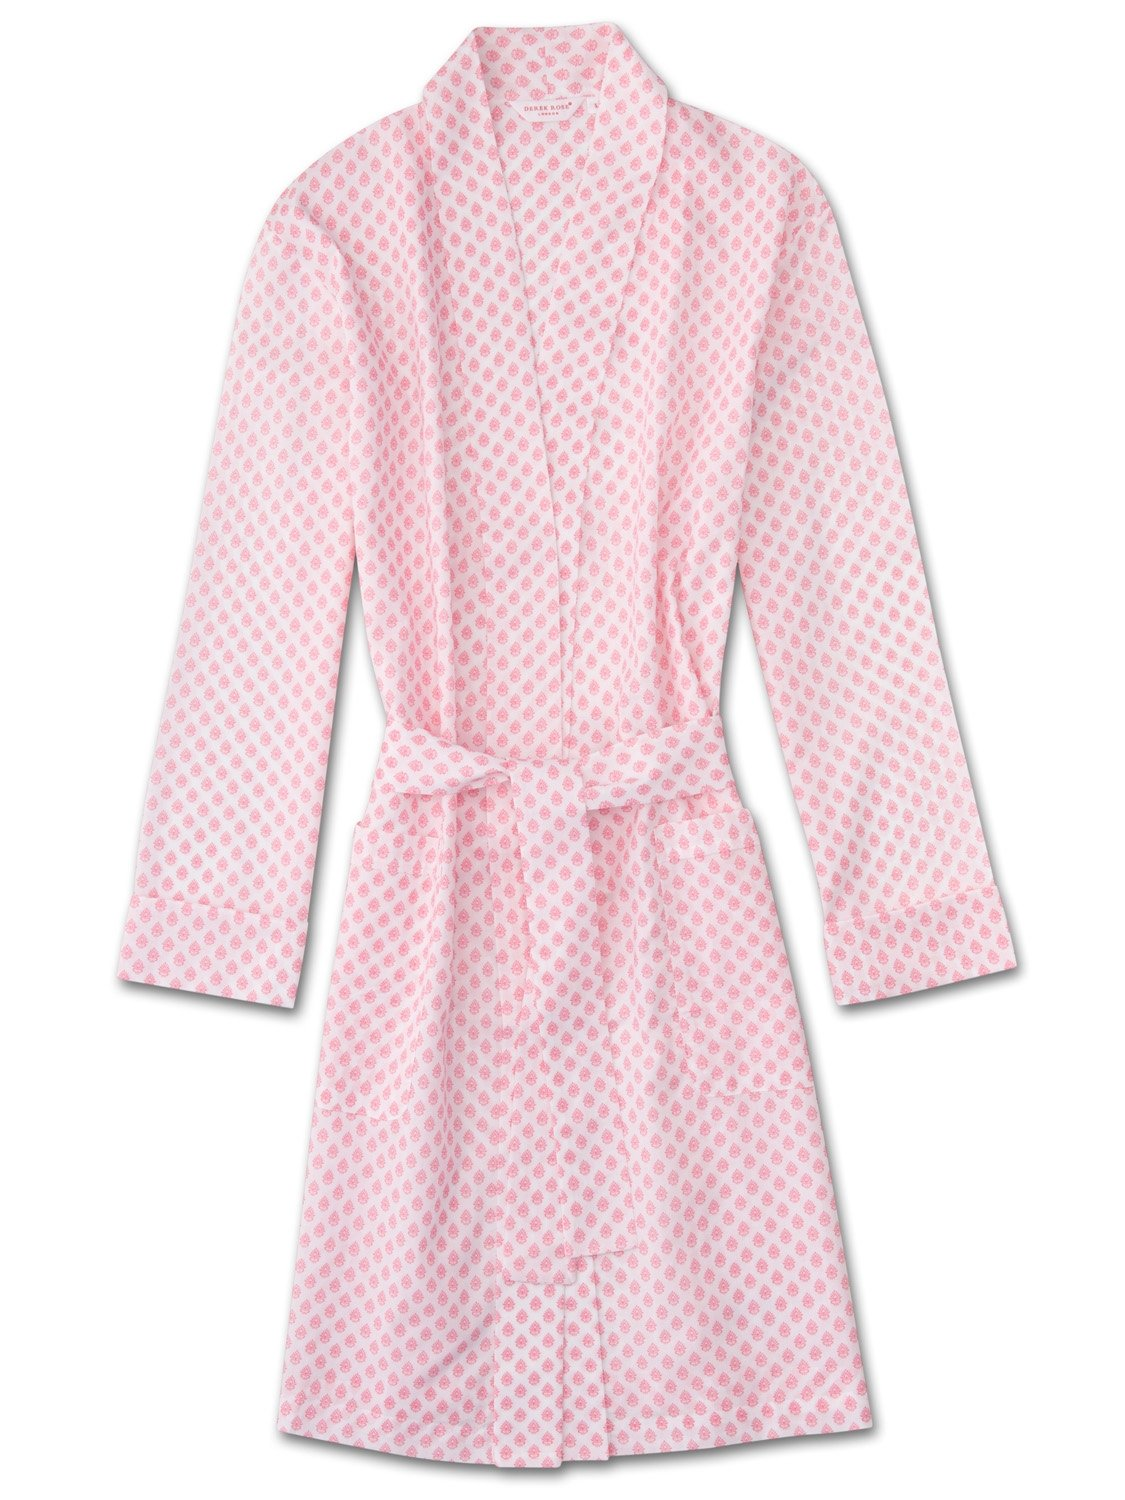 Women's Dressing Gown Ledbury 9 Cotton Batiste White